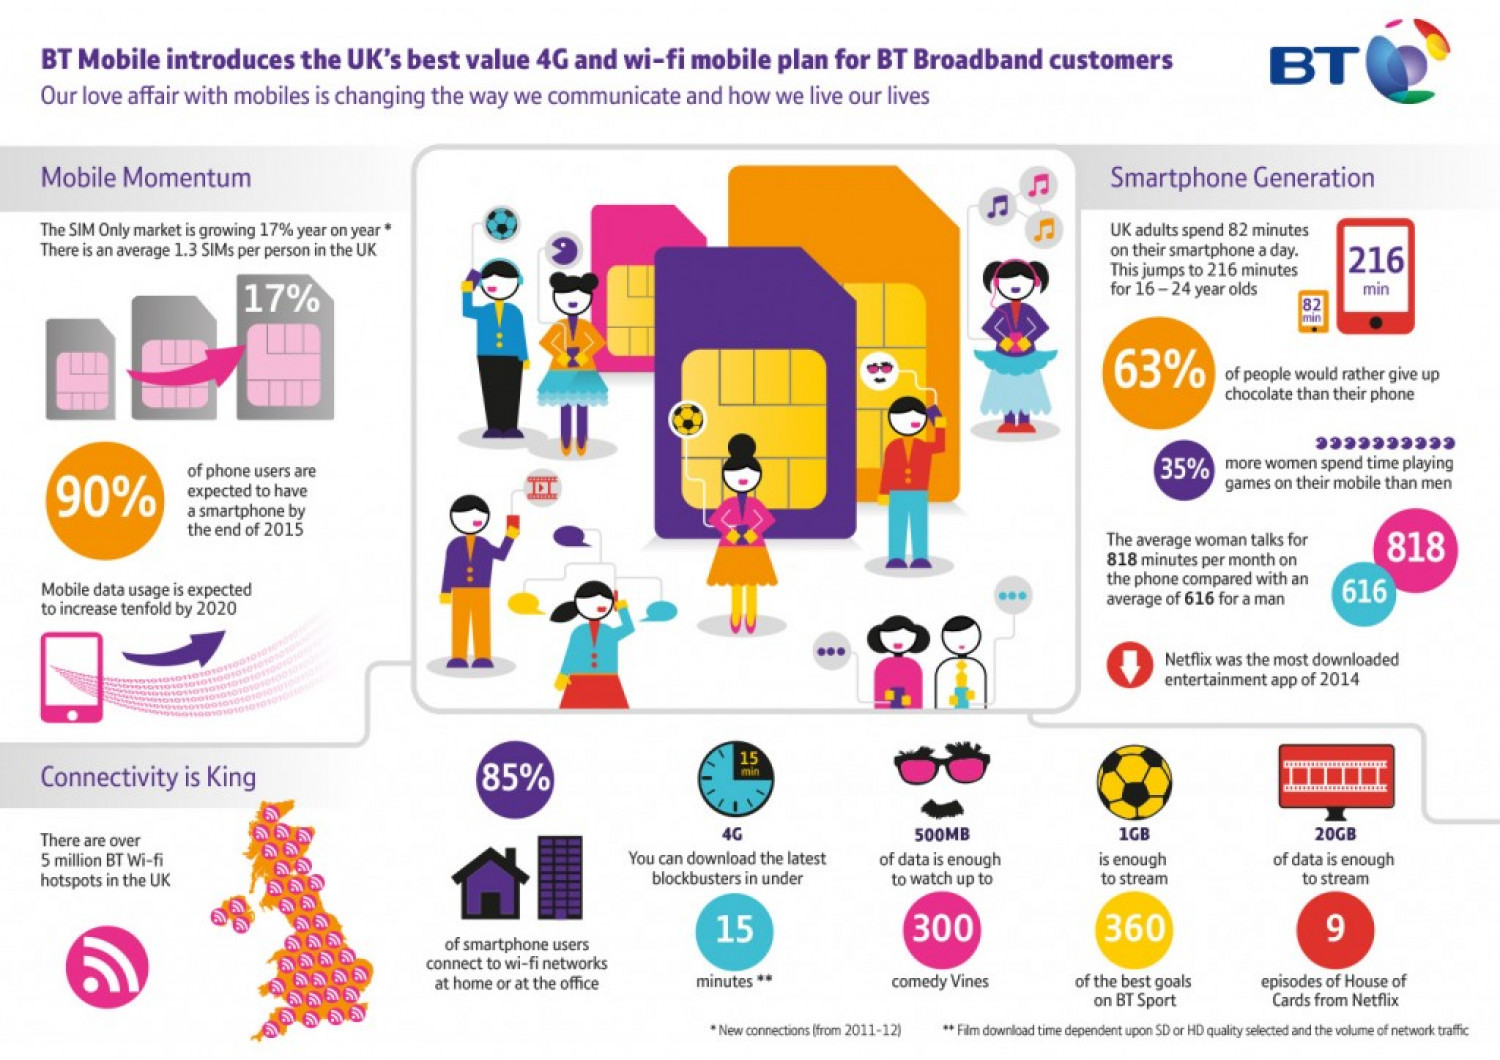 BT 4G and wi-fi Plan for BT Broadband Customers Infographic